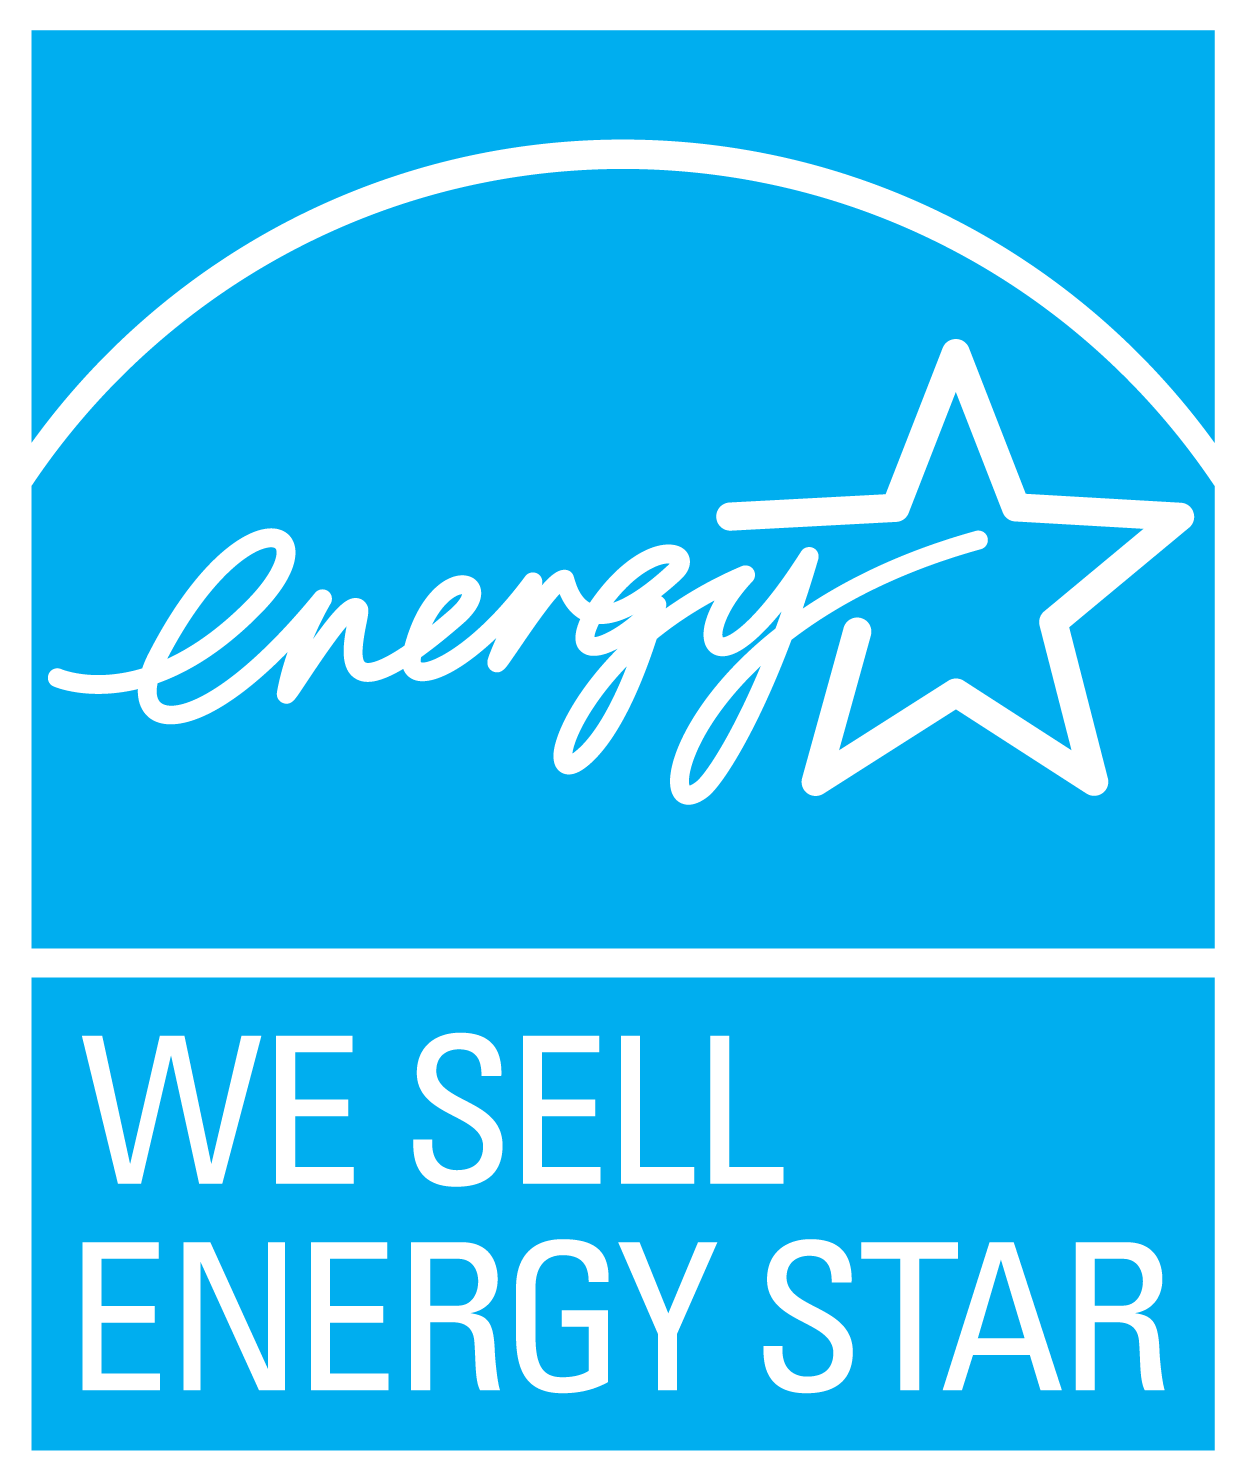 WE SELL ENERGY STAR vertical symbol